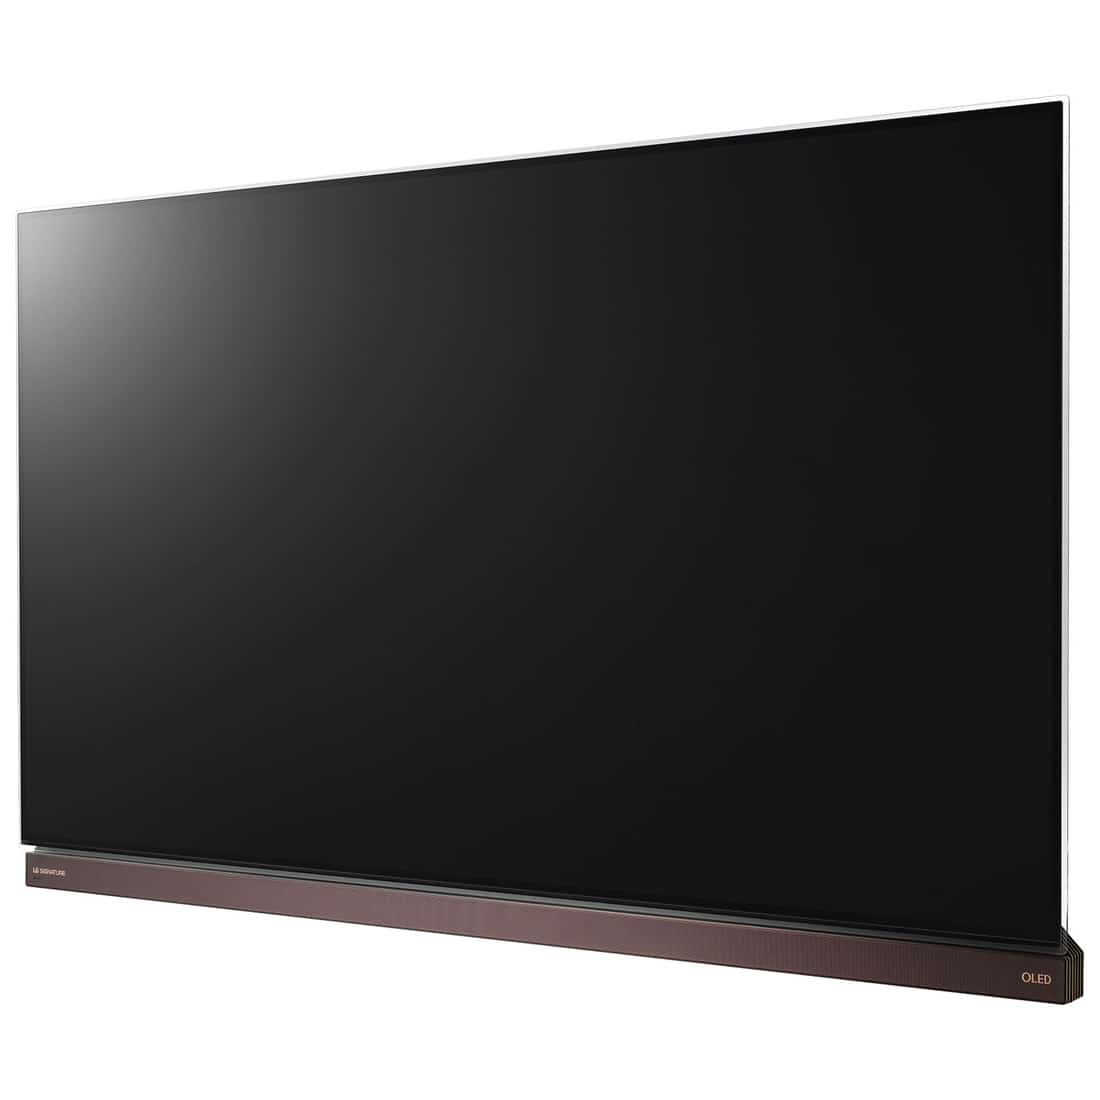 65inch Tv Dimensions Dimensions Of 65 Inch Tv Bing